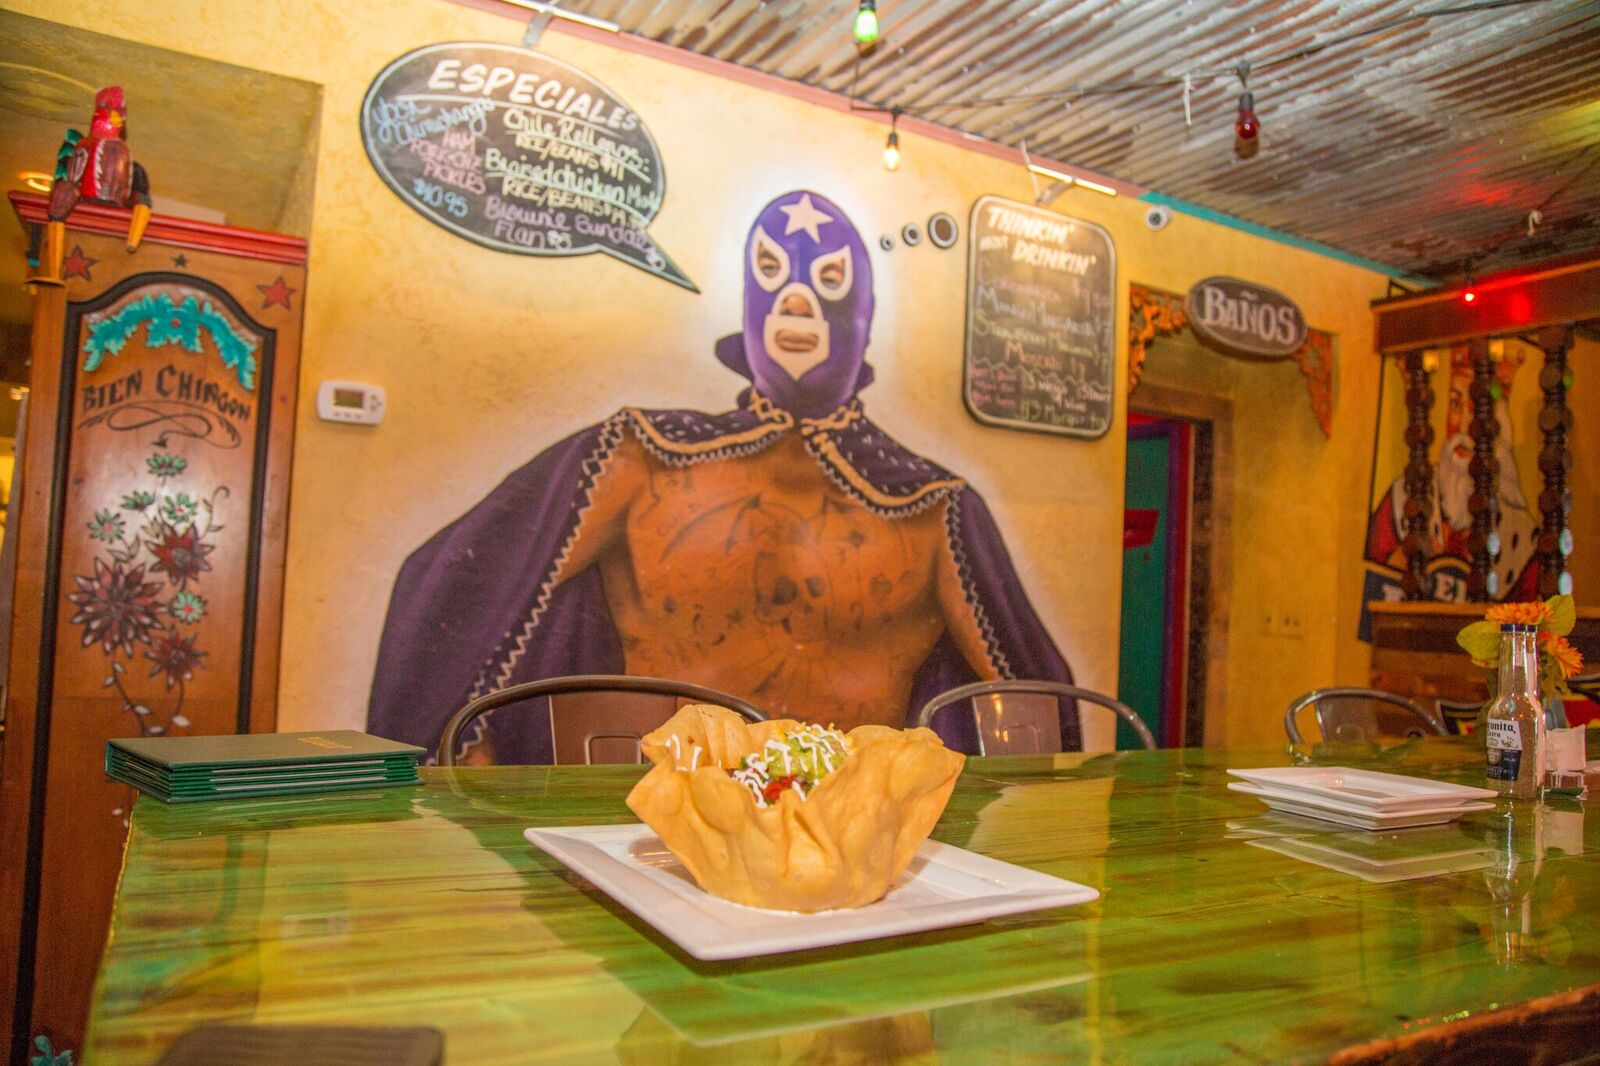 Luchador is hungry!